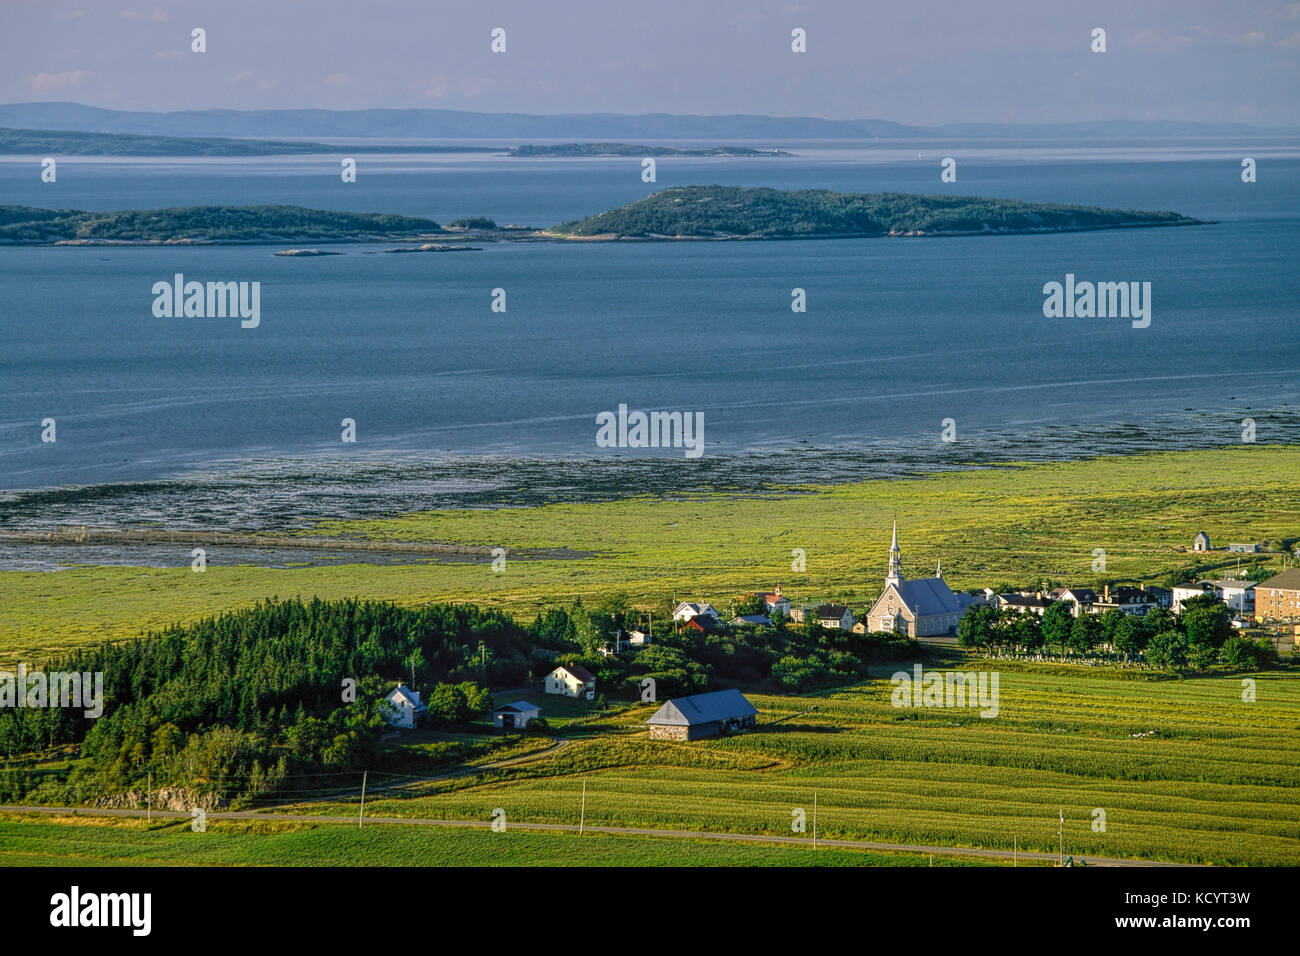 The village of Saint-André-de-Kamouraska with the Pélerins Islands in the background, Lower Saint-Lawrence - Stock Image